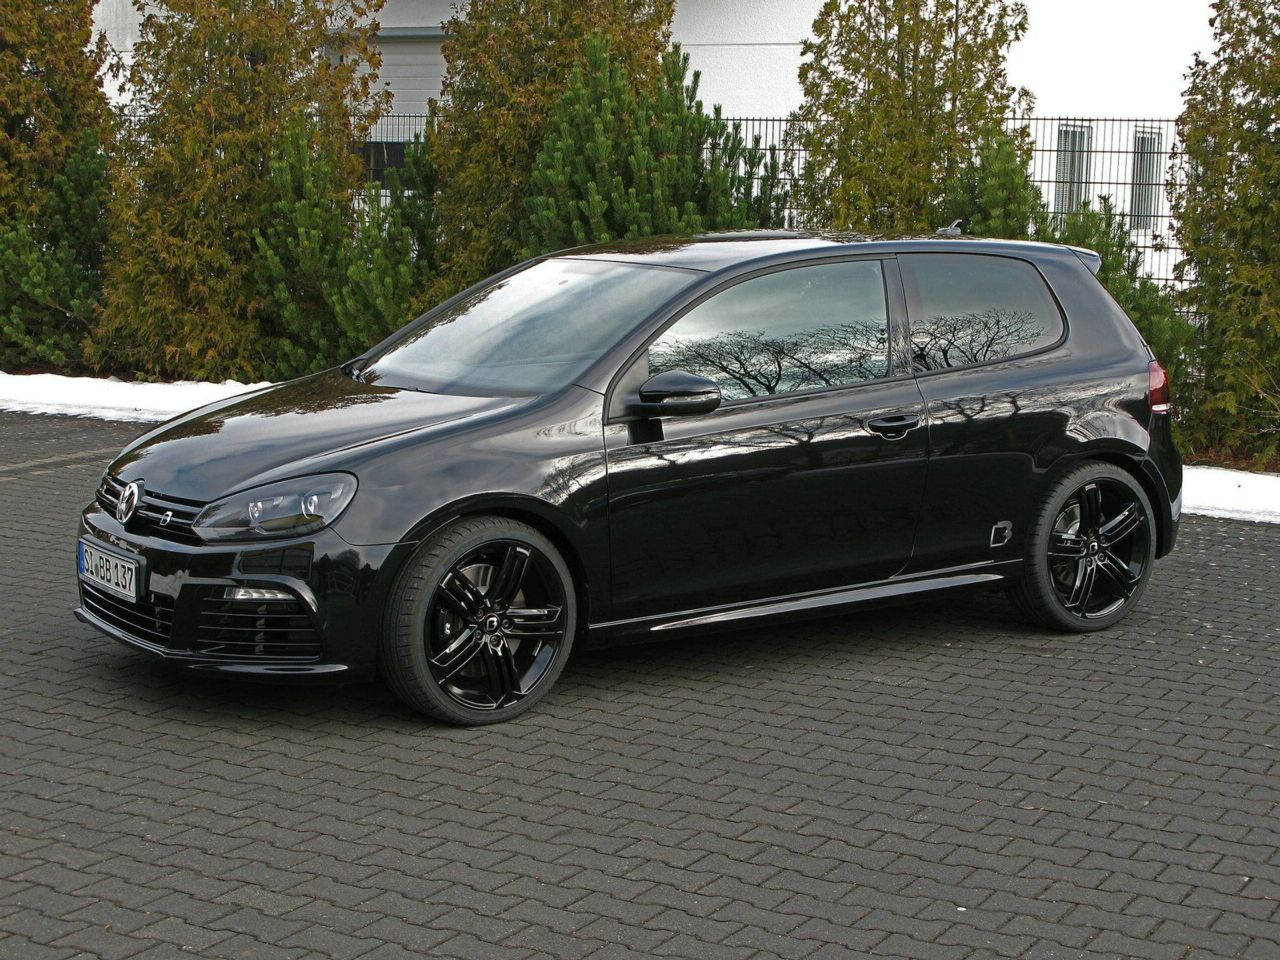 vw golf r tuning bb 1 vw tuning mag. Black Bedroom Furniture Sets. Home Design Ideas